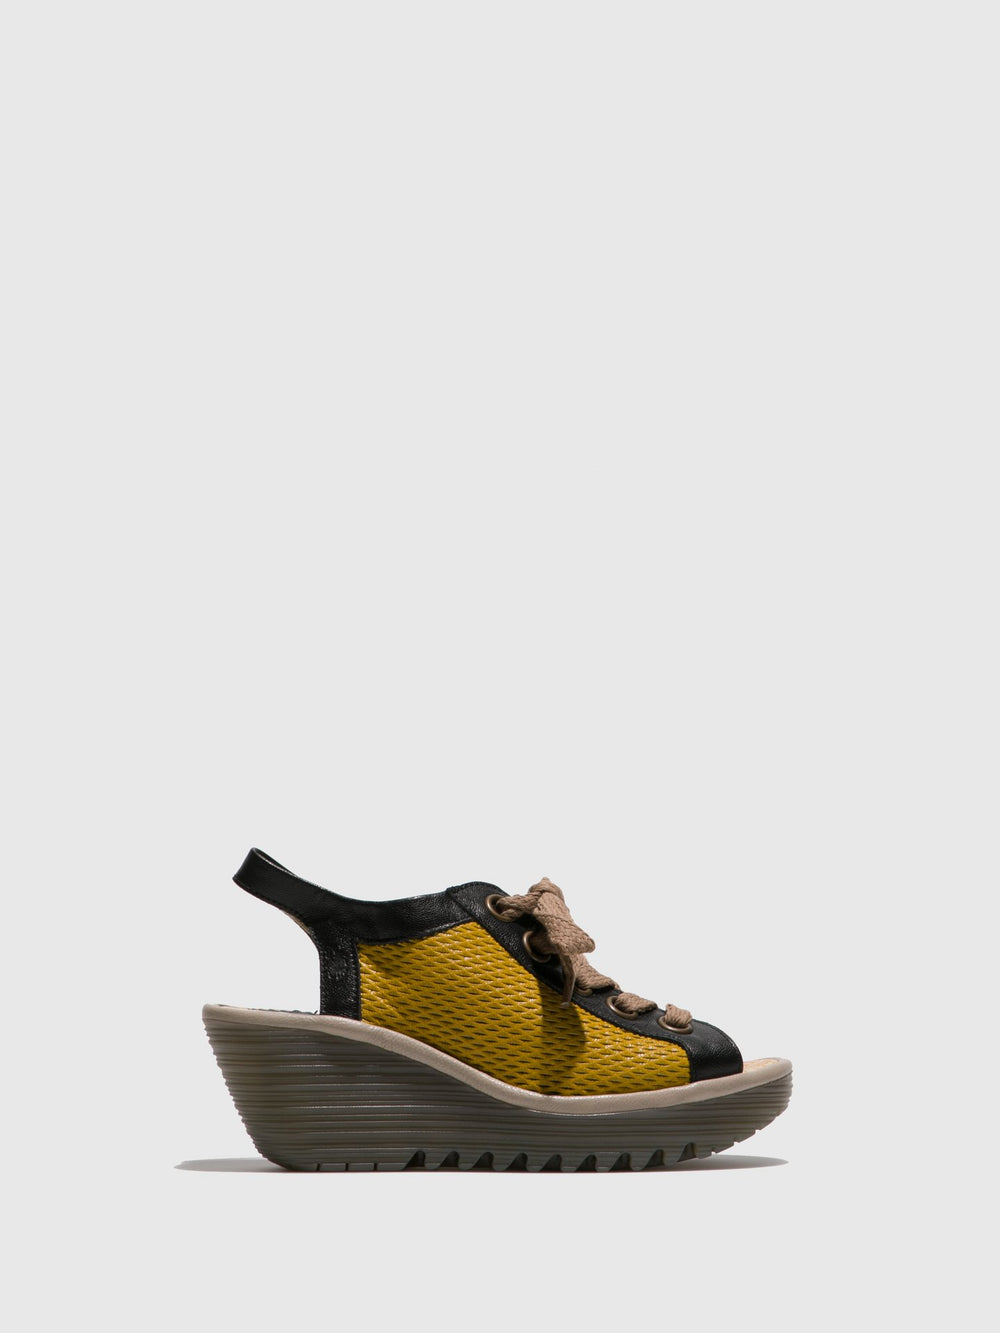 Lace-up Sandals YOLI191FLY YELLOW/BLACK/CONCRETE